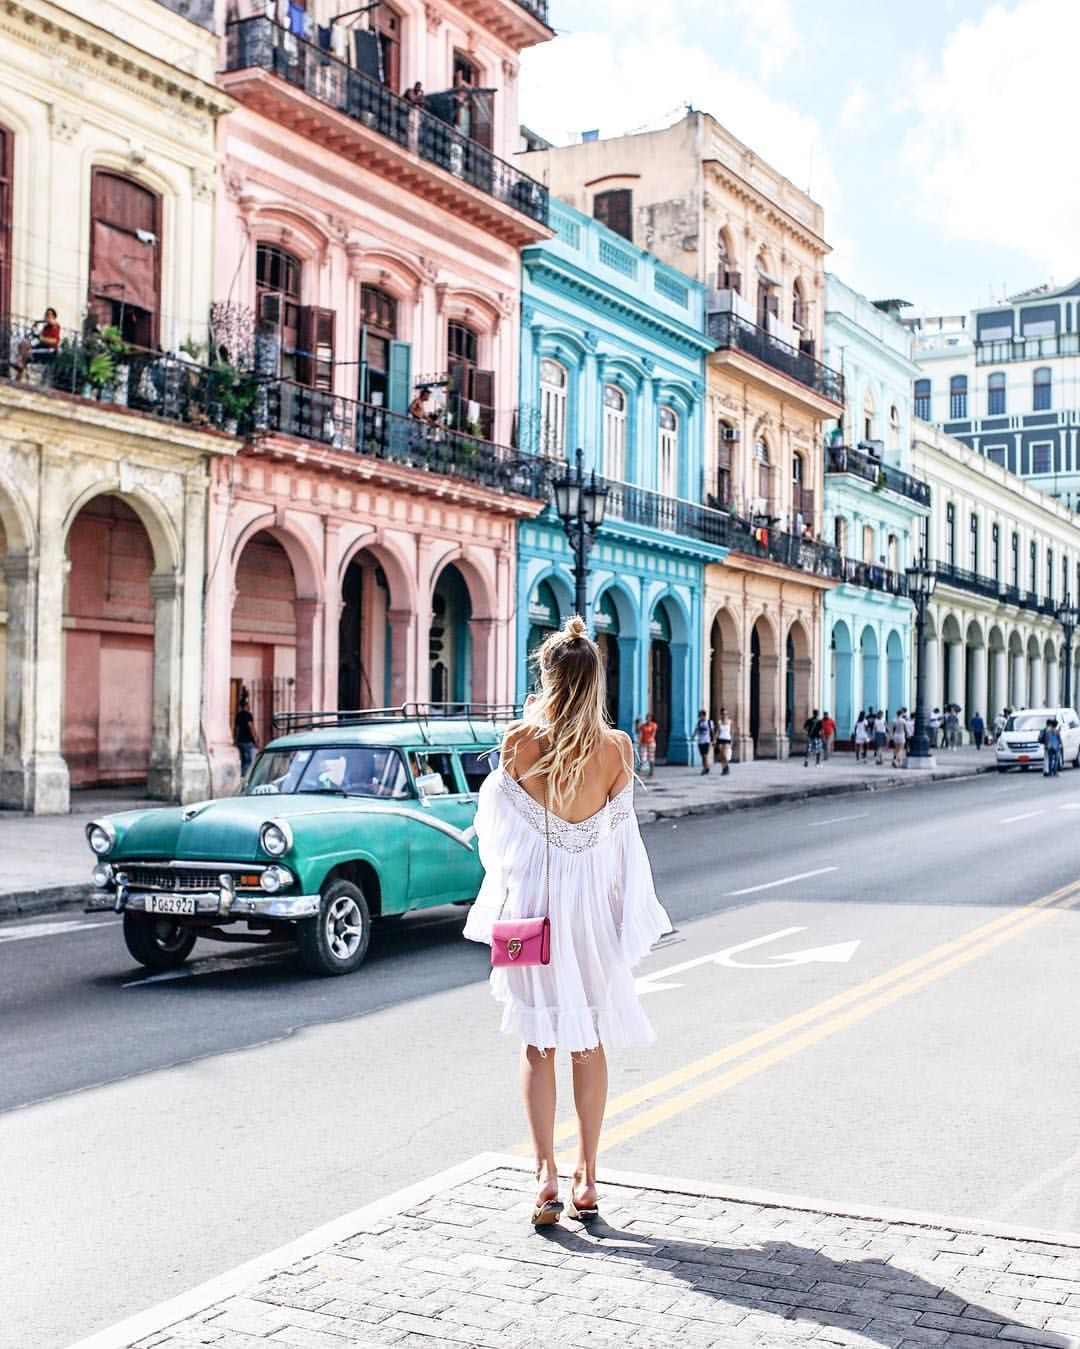 See This Instagram Photo By Ohhcouture 28 2k Likes Cuba Travel Havana Places To Travel